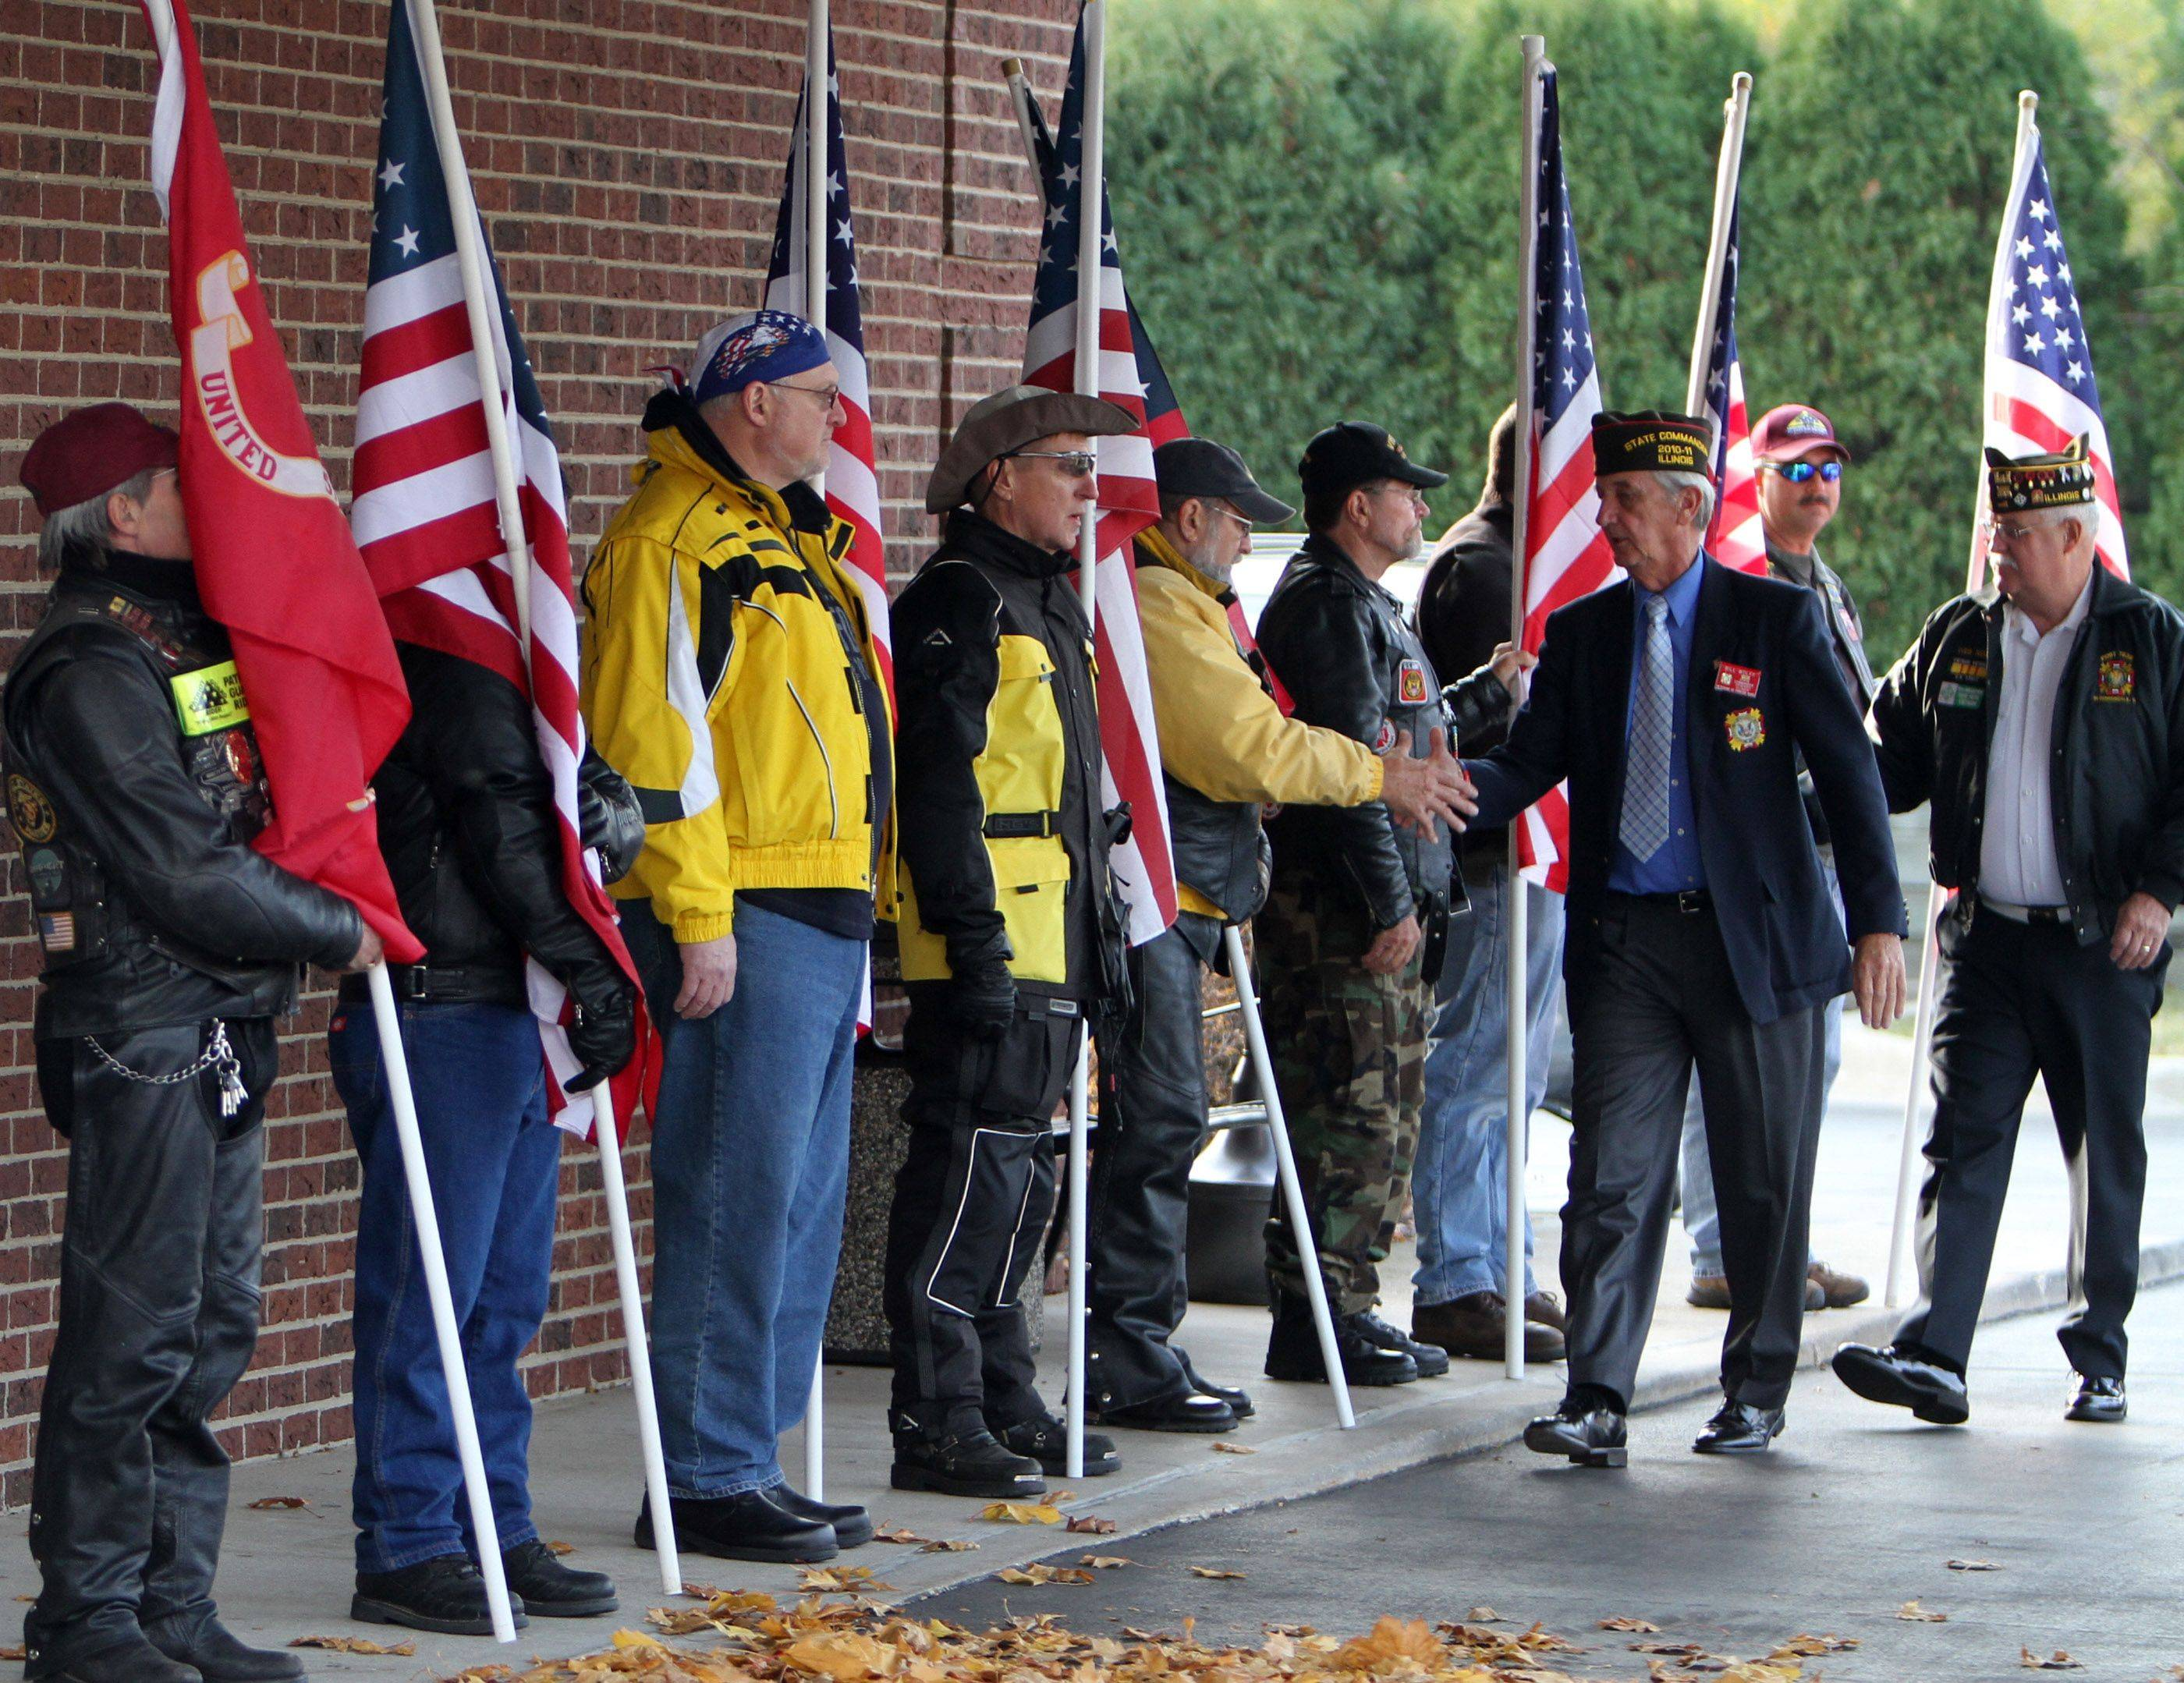 George LeClaire/gleclaire@dailyherald.comIllinois Patriot Guard members stand with an American flag in front of Glueckert Funeral Home, in Arlington Heights, for the wake for Marine Lance Cpl. James Stack, 20, of Arlington Heights Arlington Heights on Friday, November 19th.